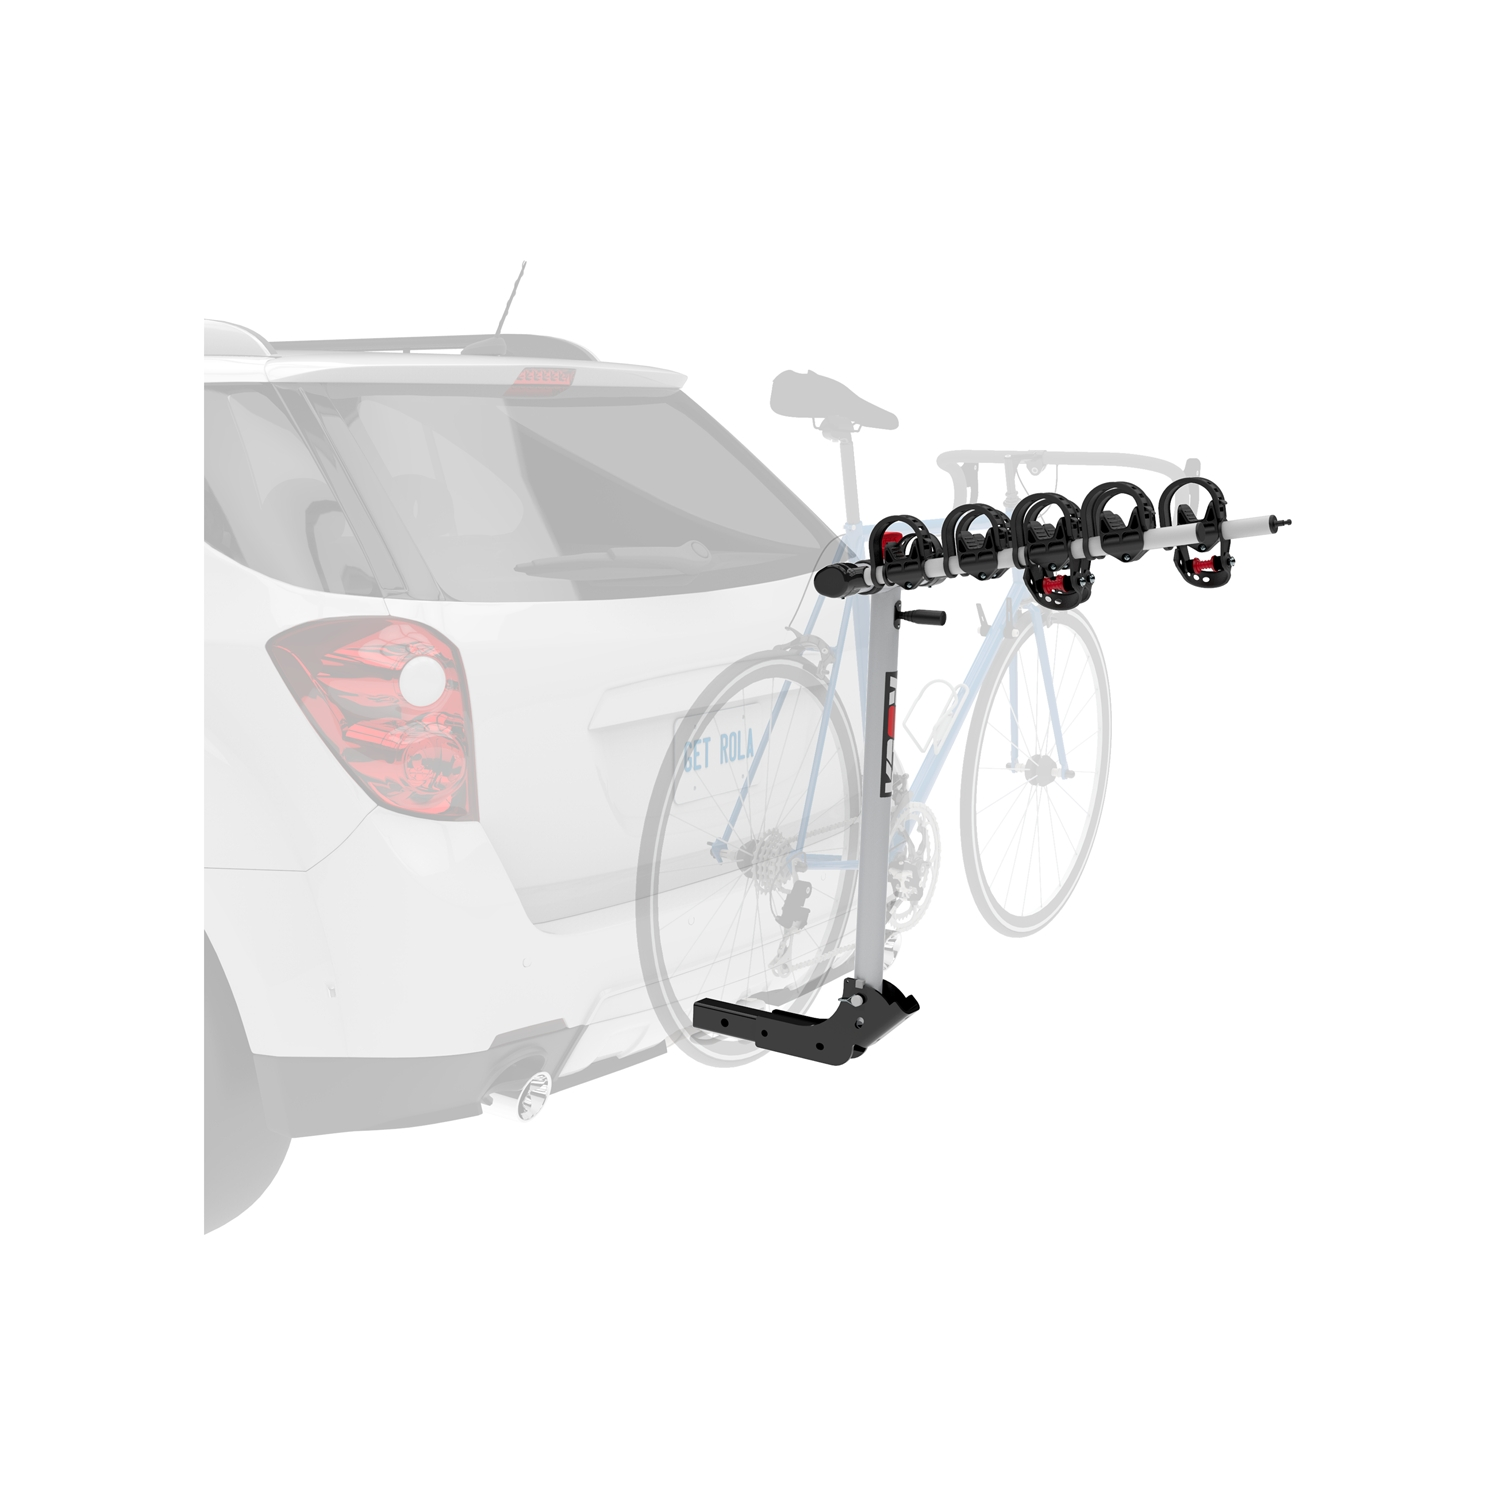 59401 Rola Bike Rack - Receiver Hitch Mount 2 Inch Receiver Hitch